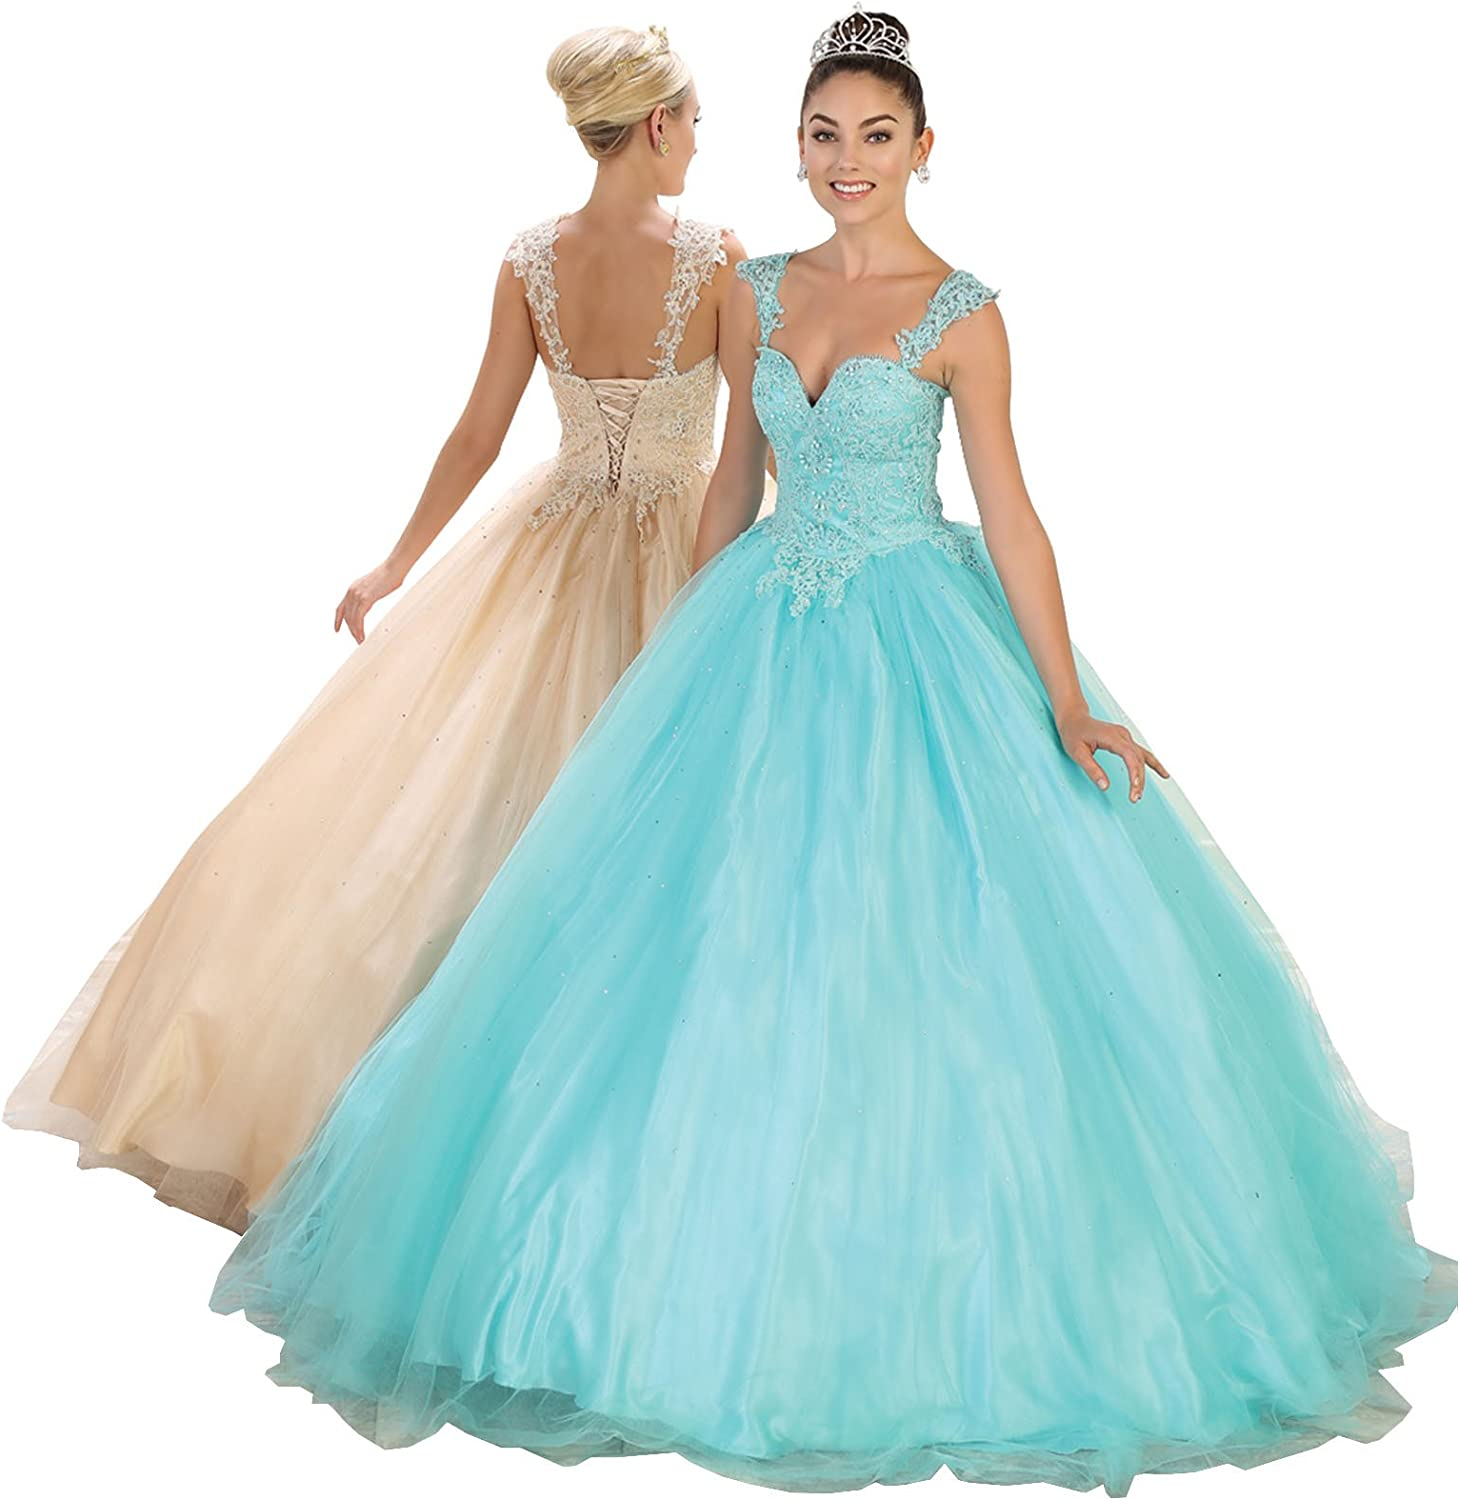 Layla K LK99 Masquerade Quinceanera Ball Gown